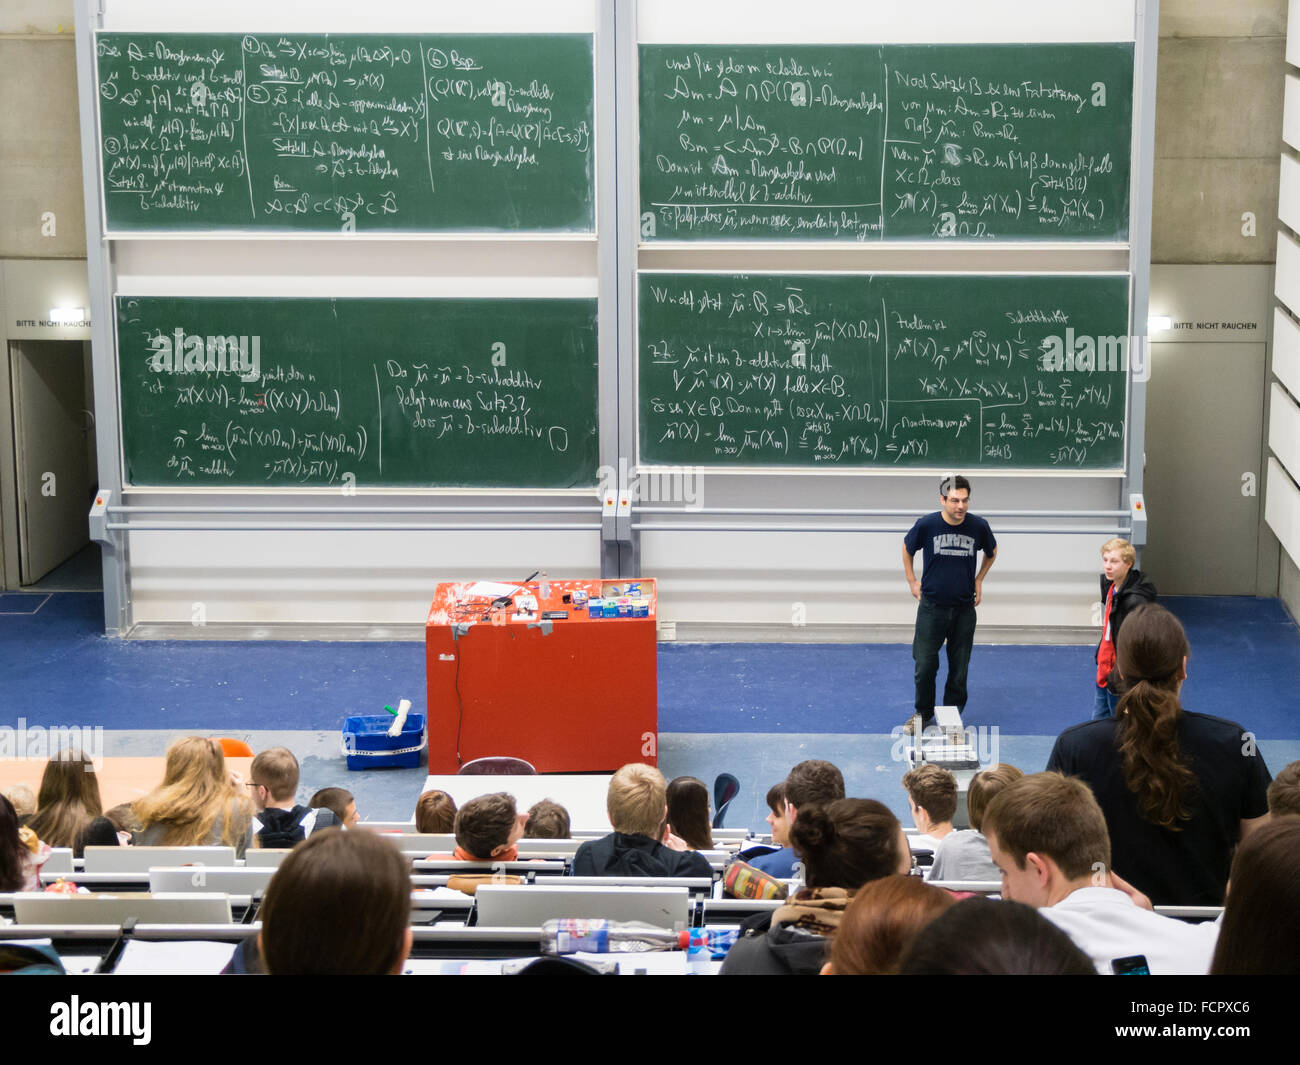 Blackboards full of scientific formulas during a lecture of higher mathematics at a university lecture auditorium. - Stock Image